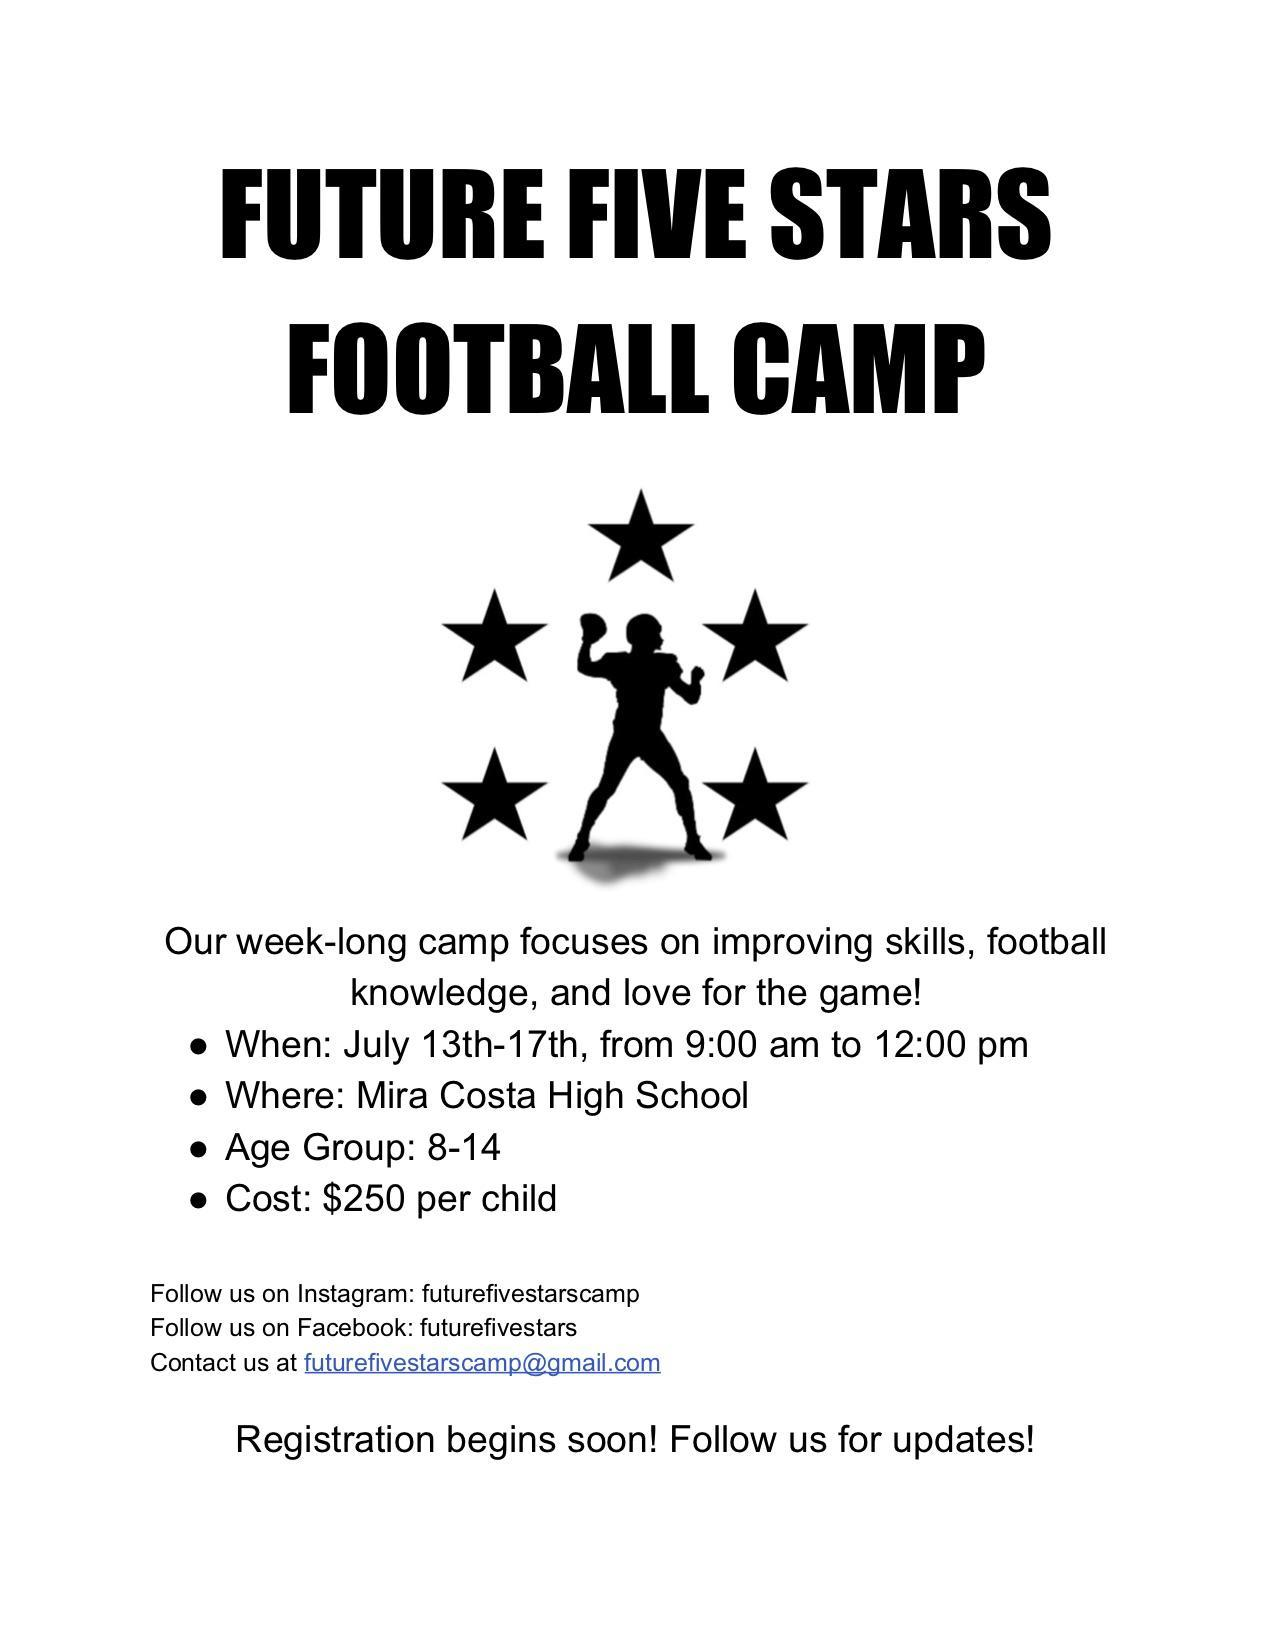 Future Five Football Camp